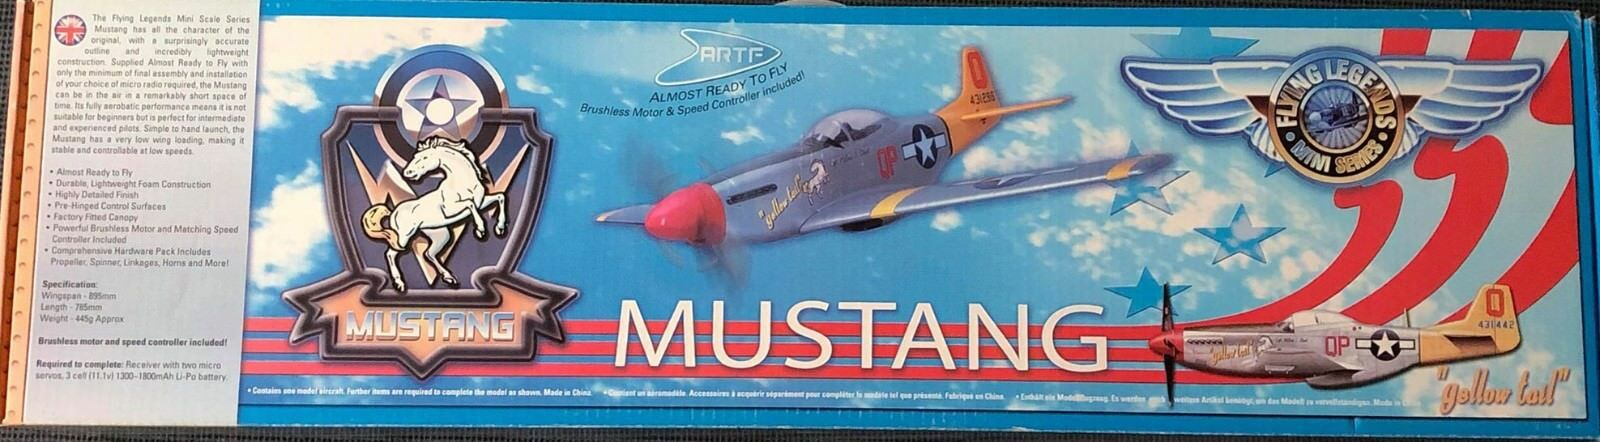 Mustang almost ready to fly Brushless Motore Regolatore